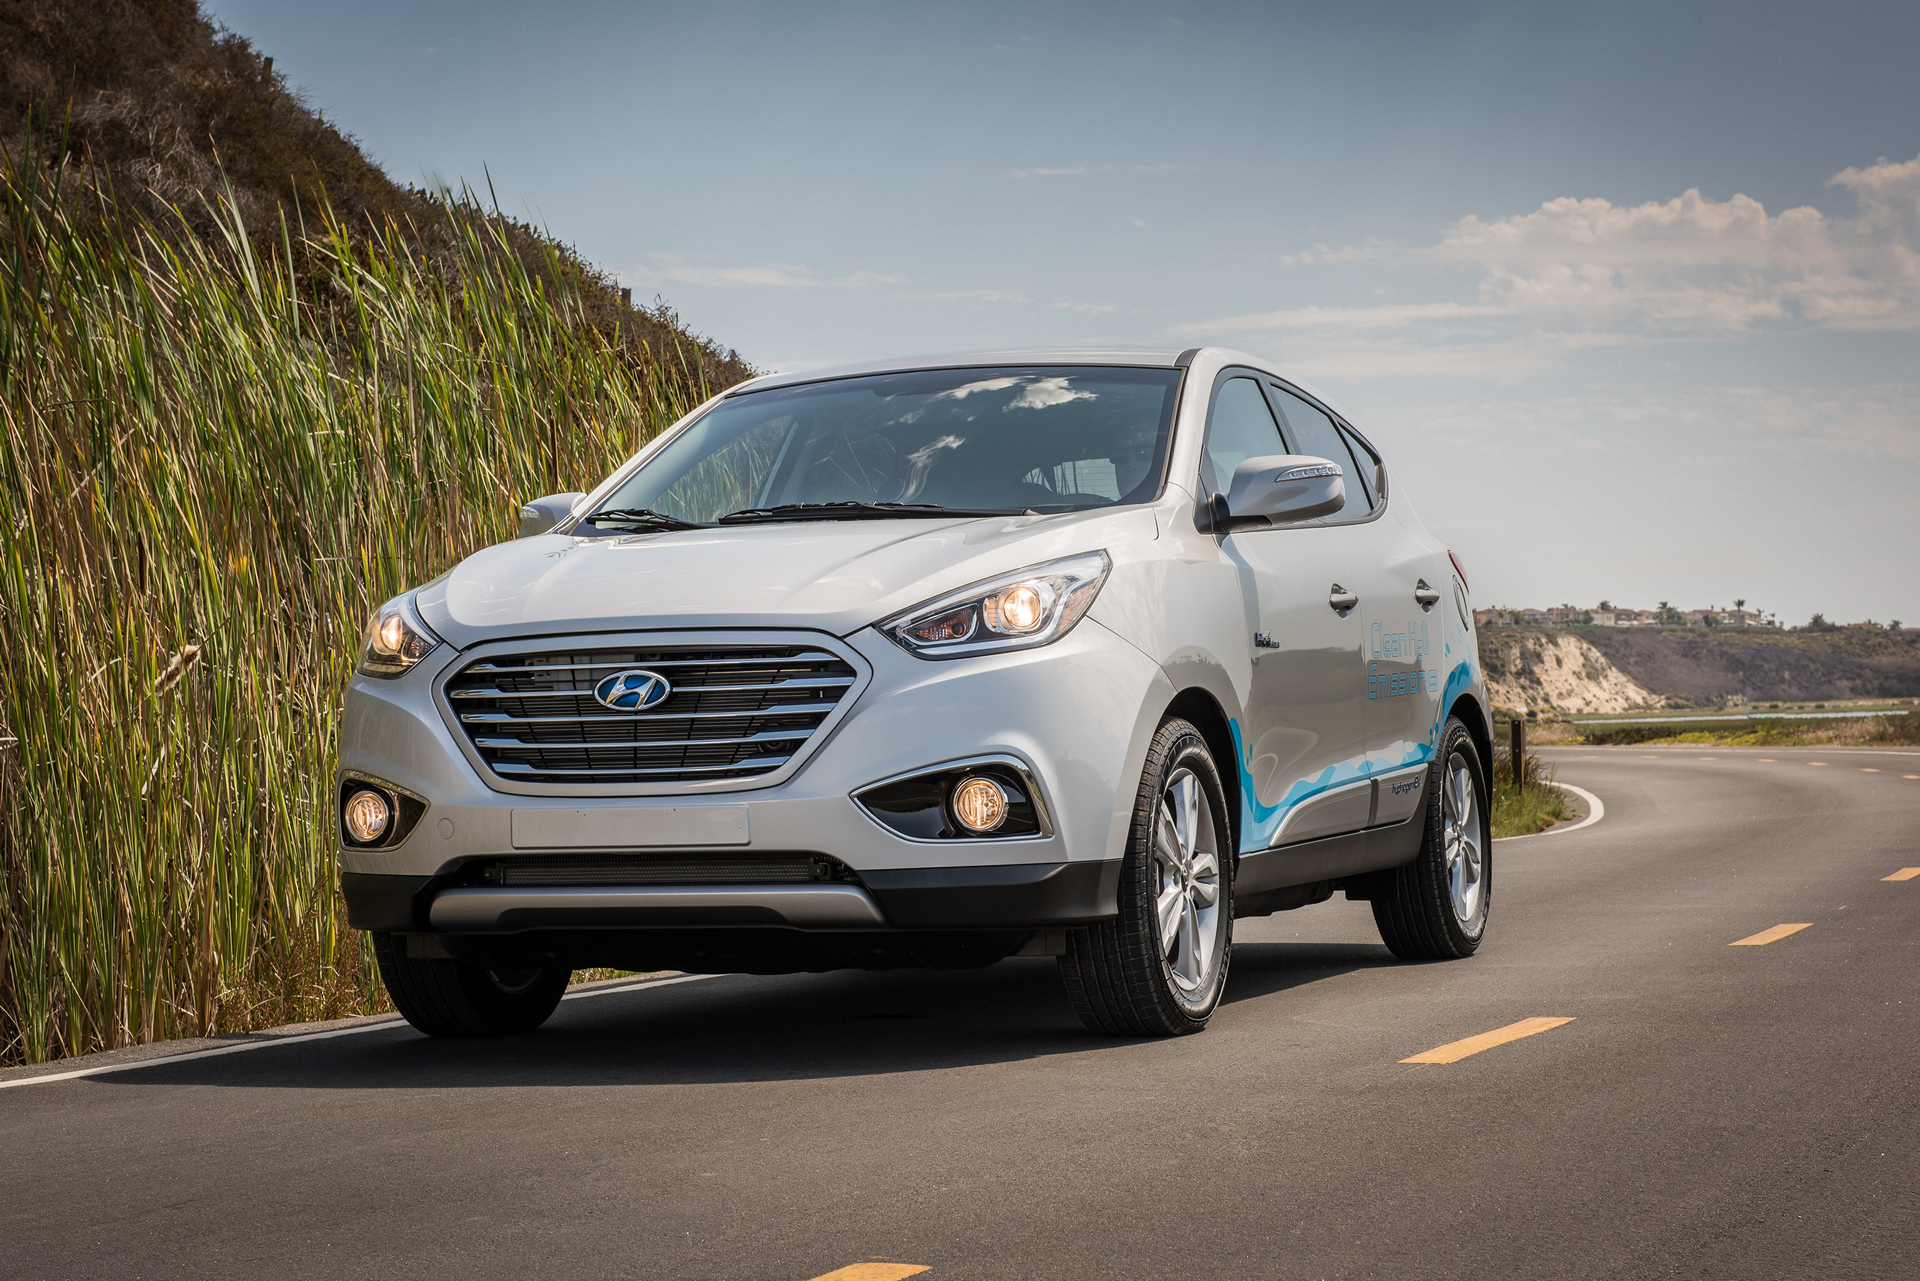 2016 hyundai tucson fuel cell review carrrs auto portal. Black Bedroom Furniture Sets. Home Design Ideas